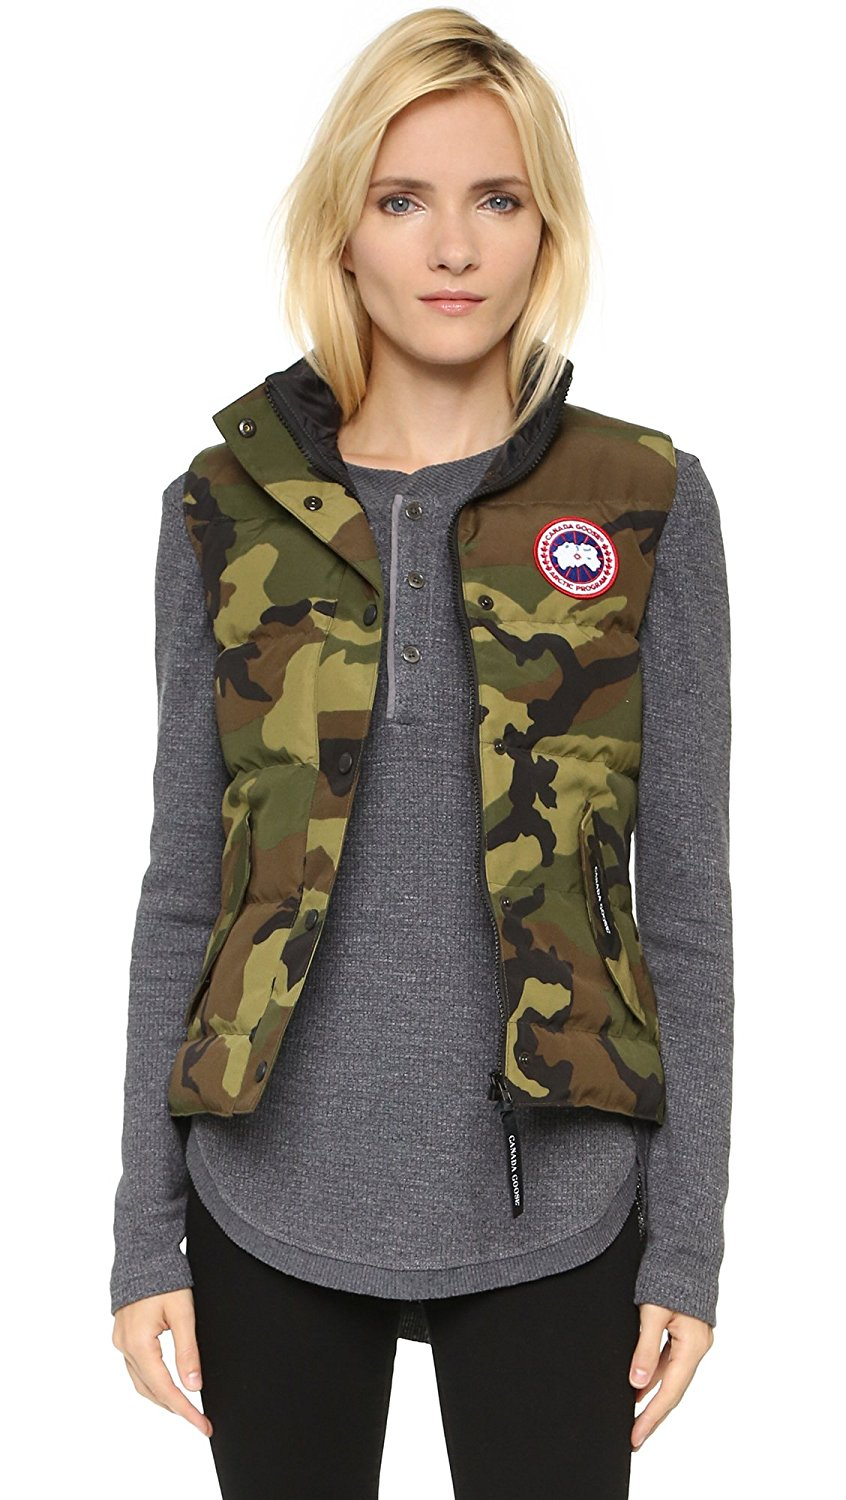 e61731c8c251 Buy Canada Goose Womens Freestyle Vest in Cheap Price on Alibaba.com